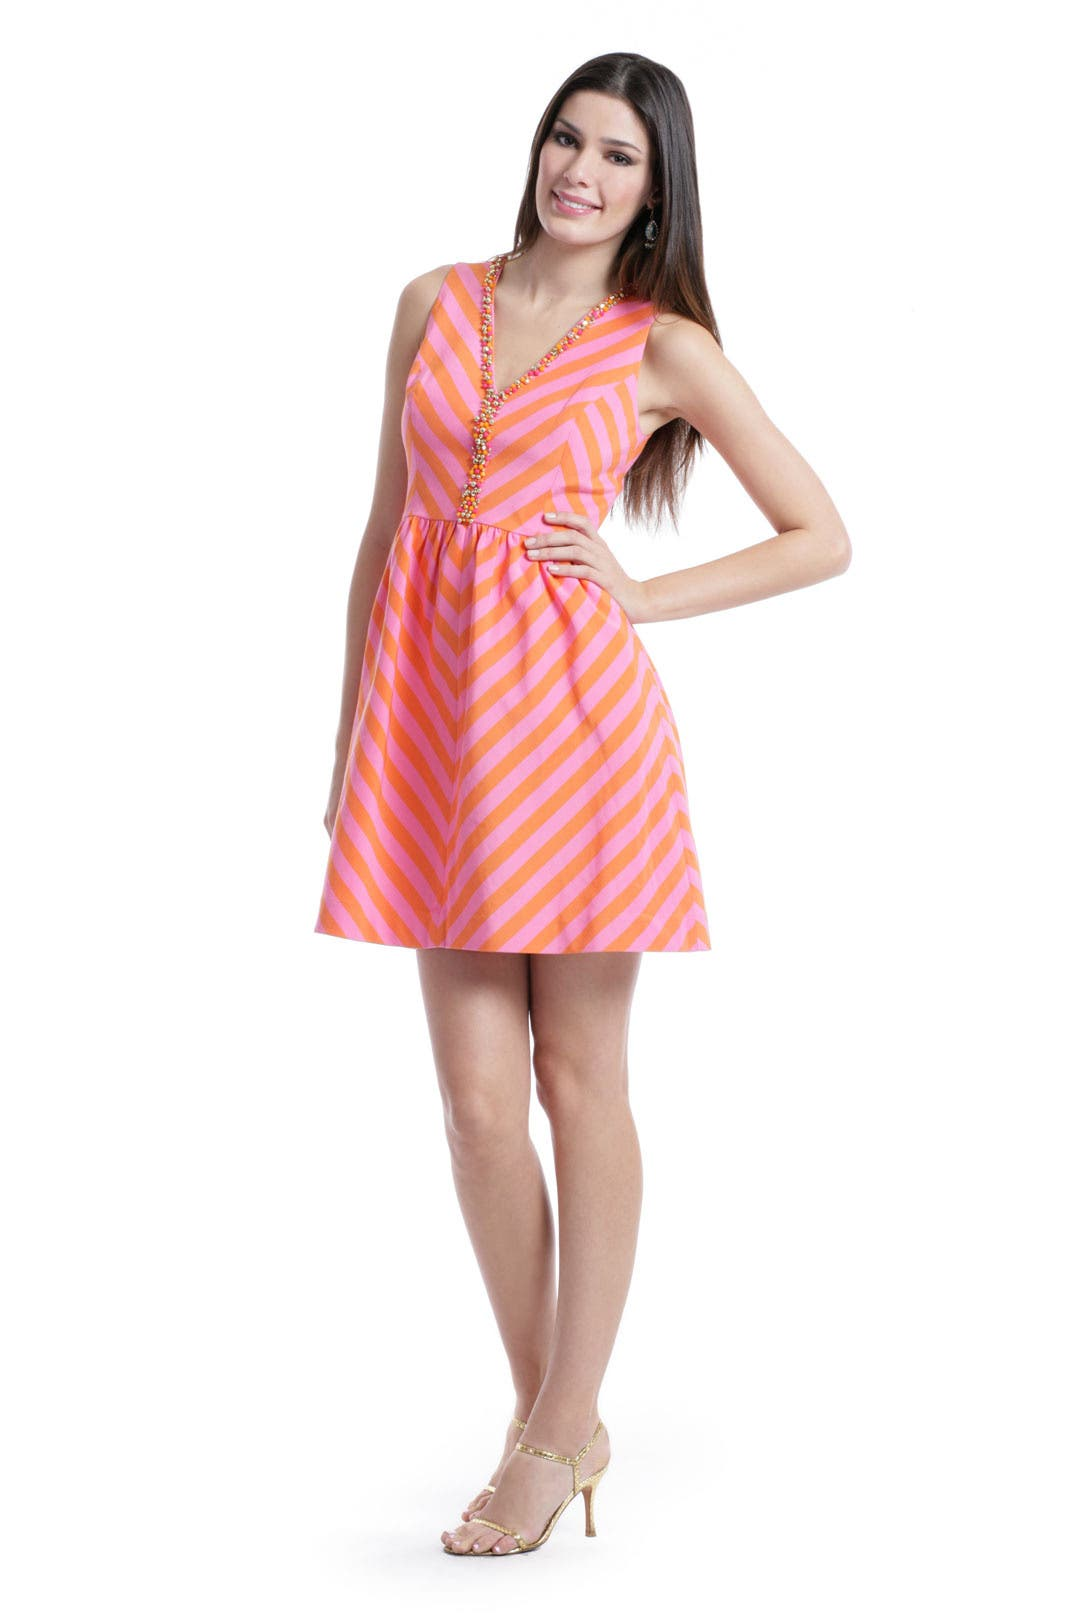 Citrus Candy Cane Dress by Lilly Pulitzer